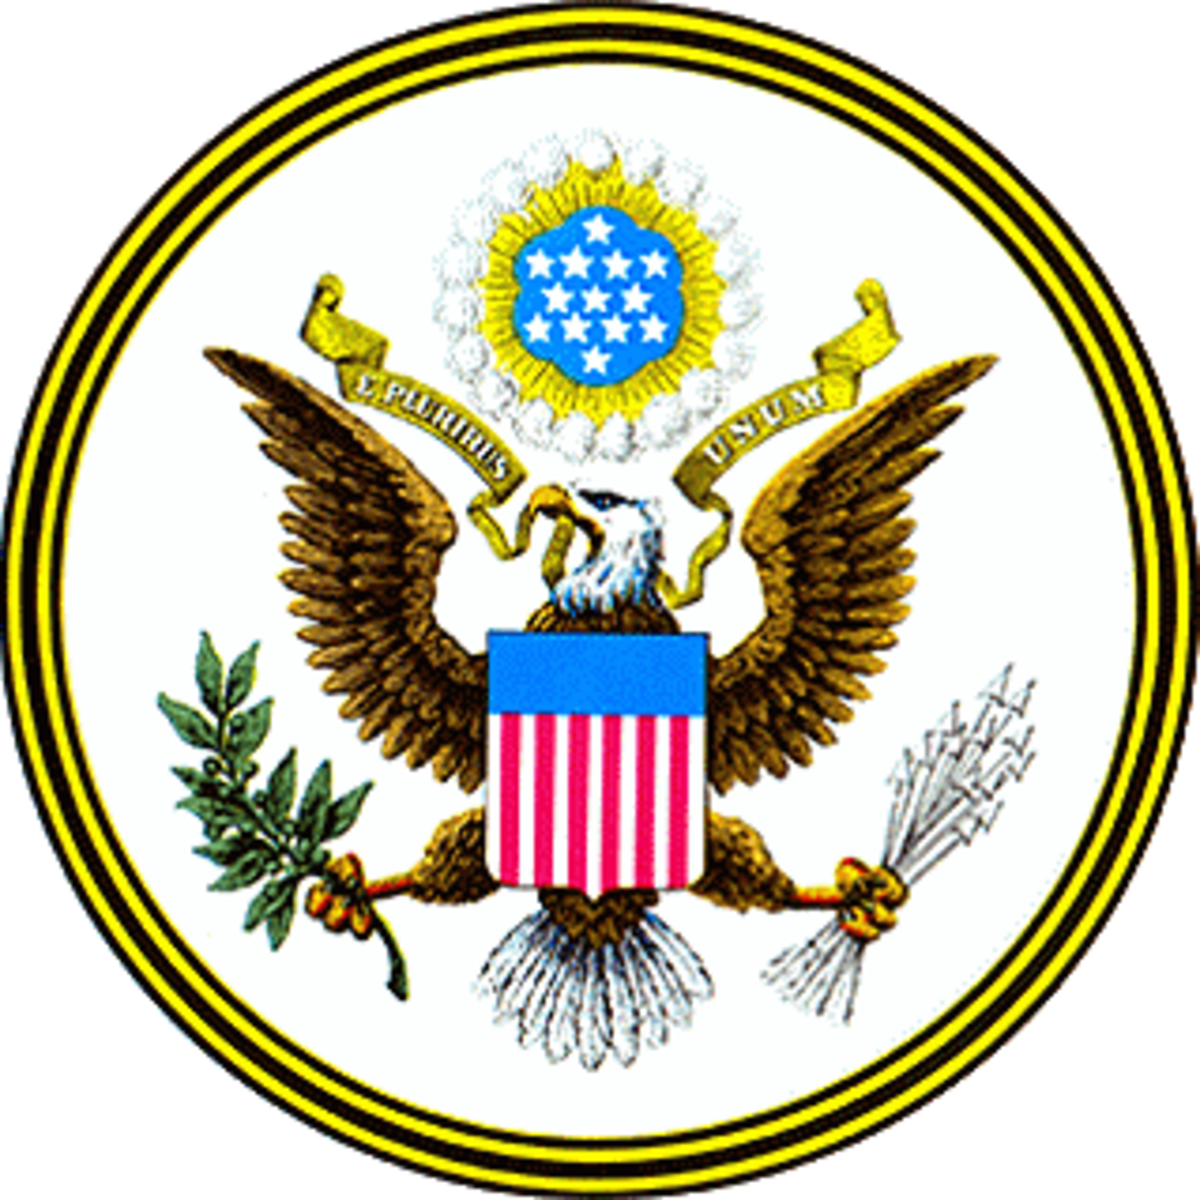 The American government is grounded on the idea of limited government which is characterized by the rule of law, republicanism, and constitutionalism with its principles of separation of powers and checks and balances.